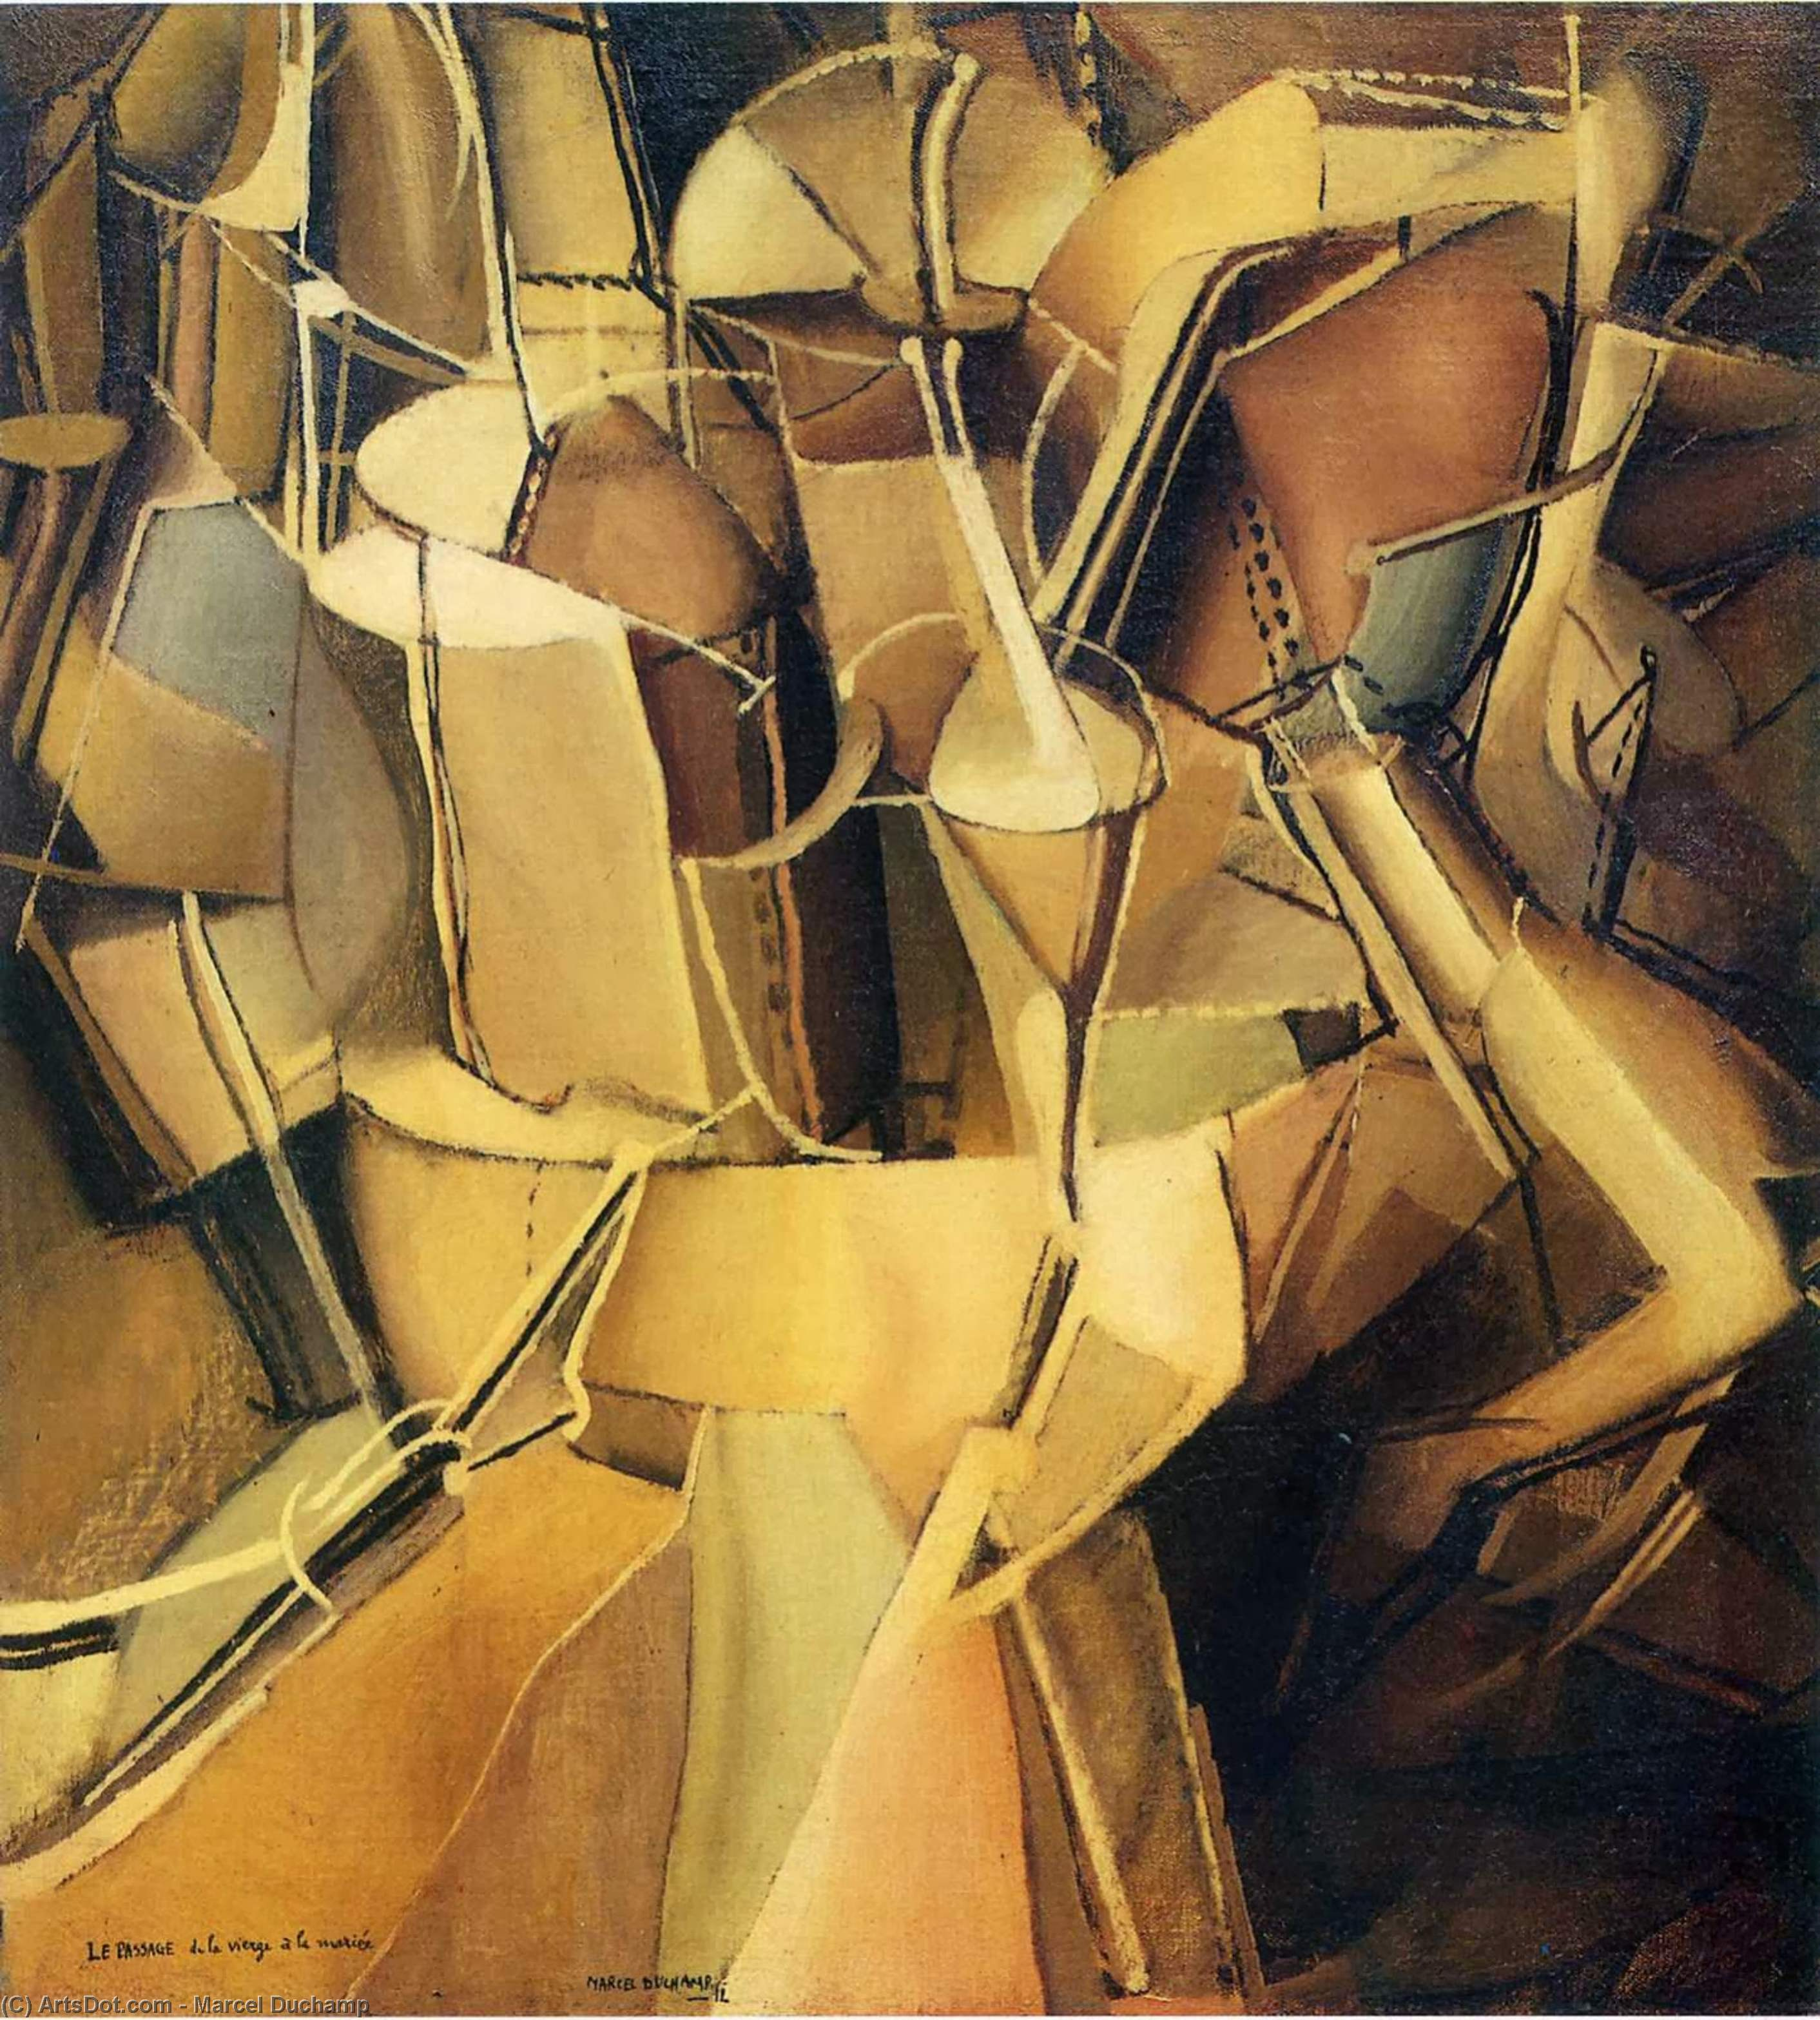 Wikioo.org - The Encyclopedia of Fine Arts - Painting, Artwork by Marcel Duchamp - Transition of Virgin into a Bride